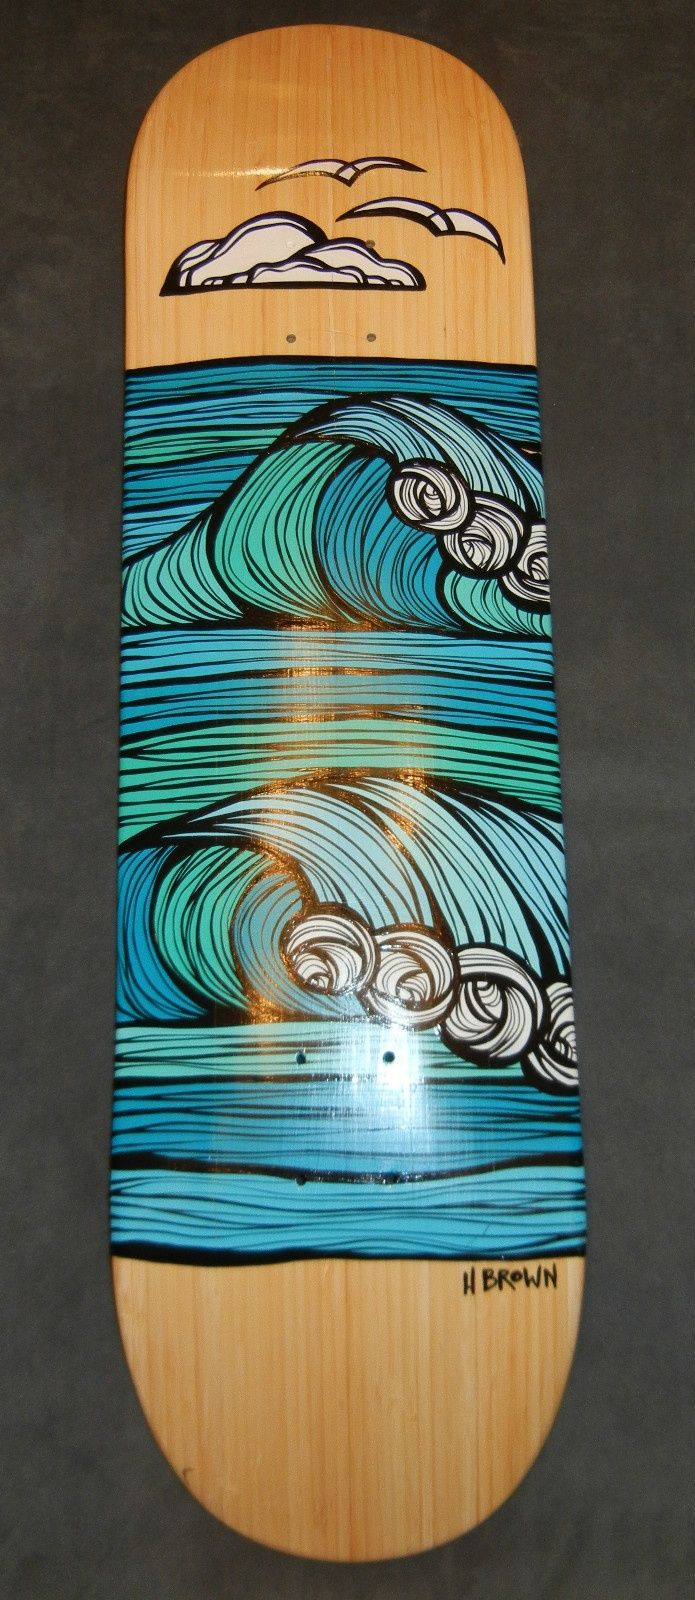 hand painted skateboard for sale - Recherche Google